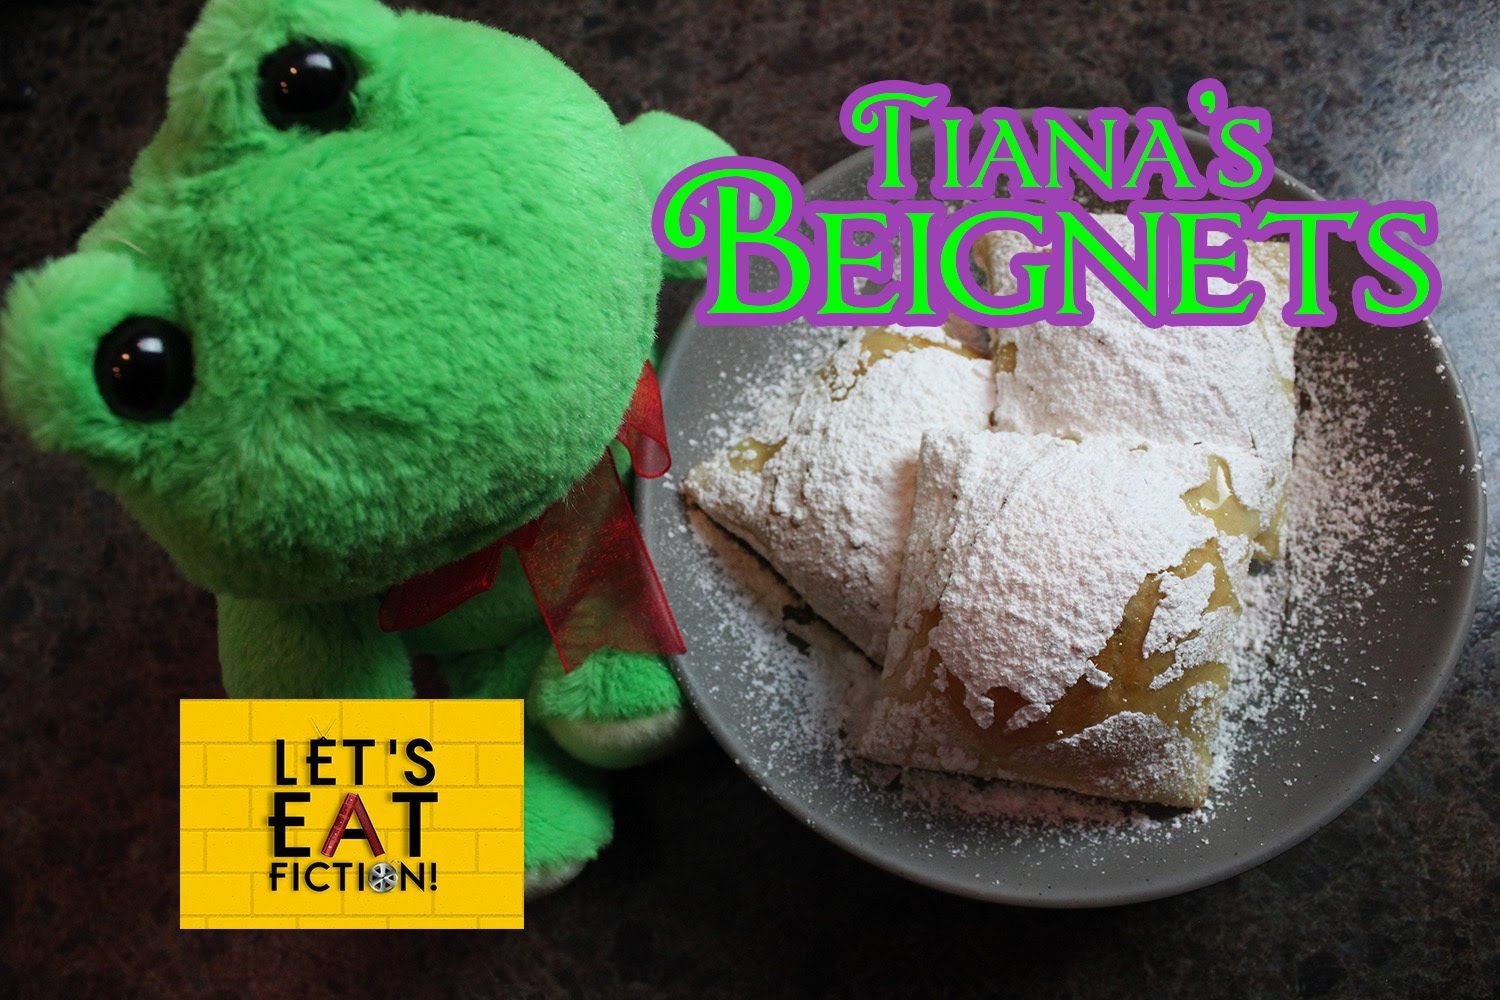 Tiana's (The Princess and the Frog) Let's Eat